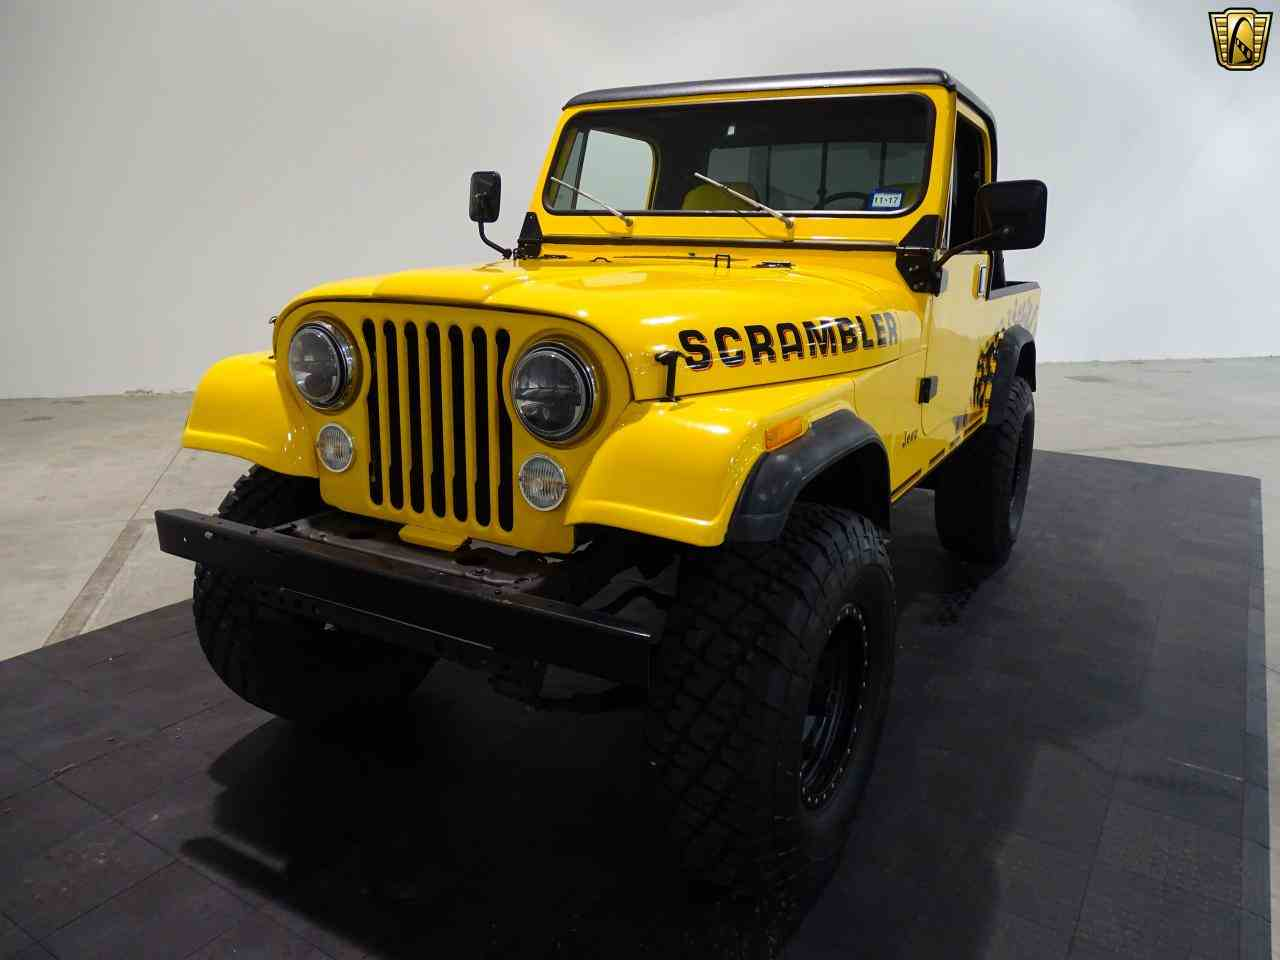 Large Picture of '85 CJ8 Scrambler located in Texas Offered by Gateway Classic Cars - Houston - KEST